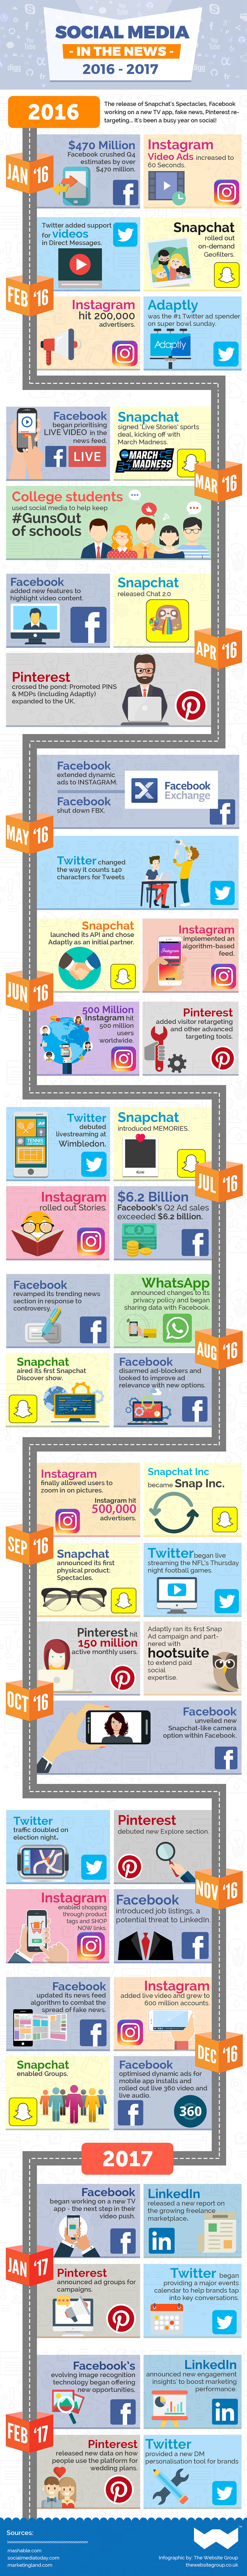 Social Media in the News 2016 - 2017 [Infographic] | Social Media Today